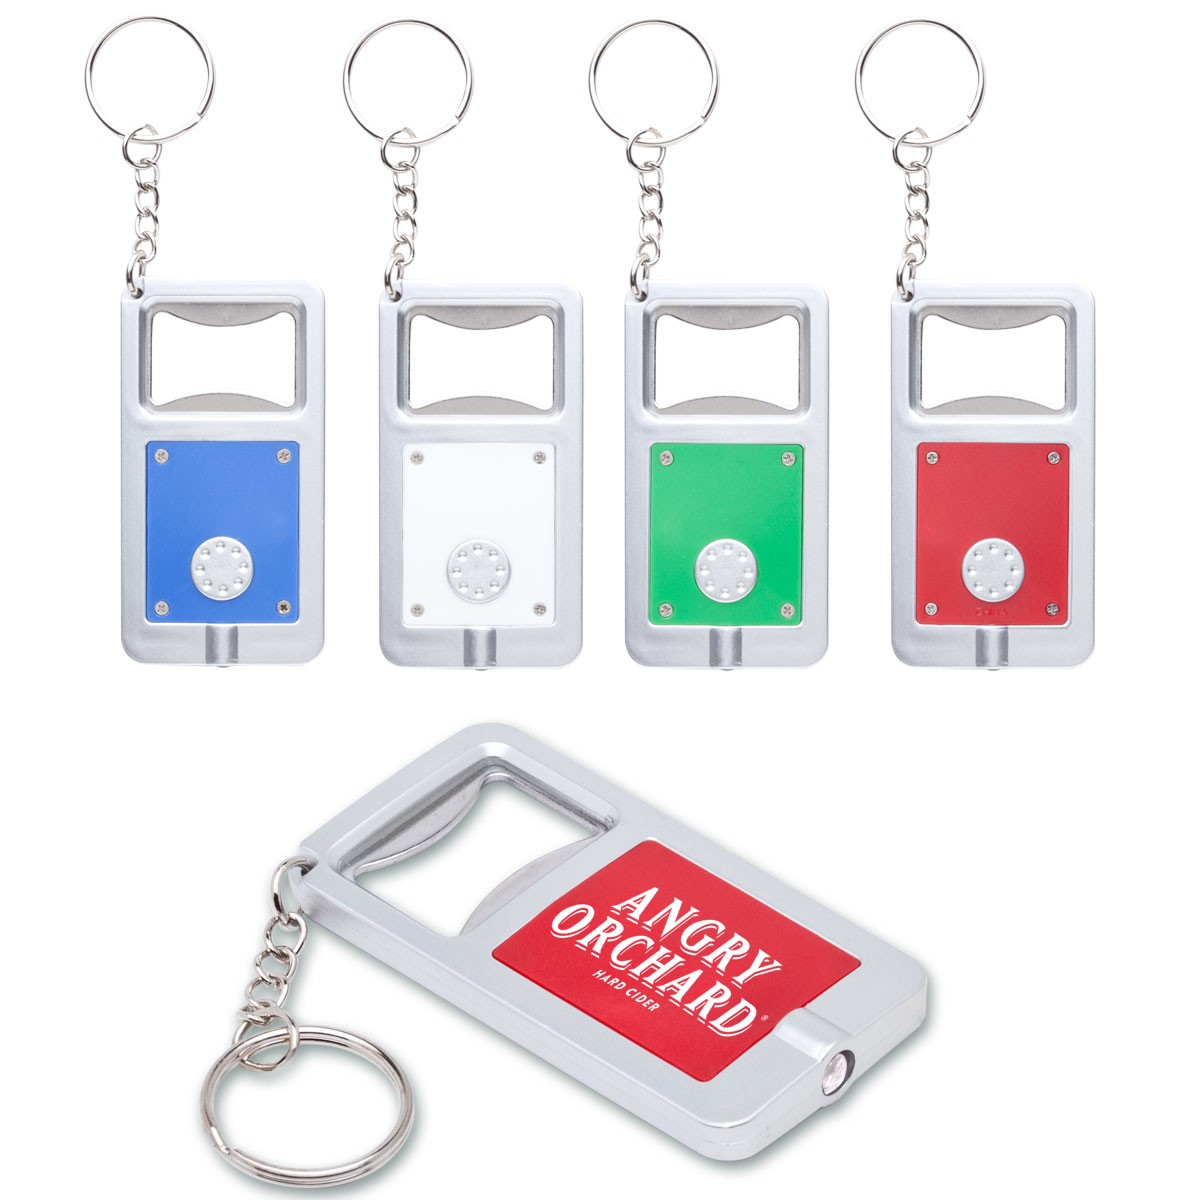 Keychain With Bottle Opener and Flashlight WAUCUSTMULTI02